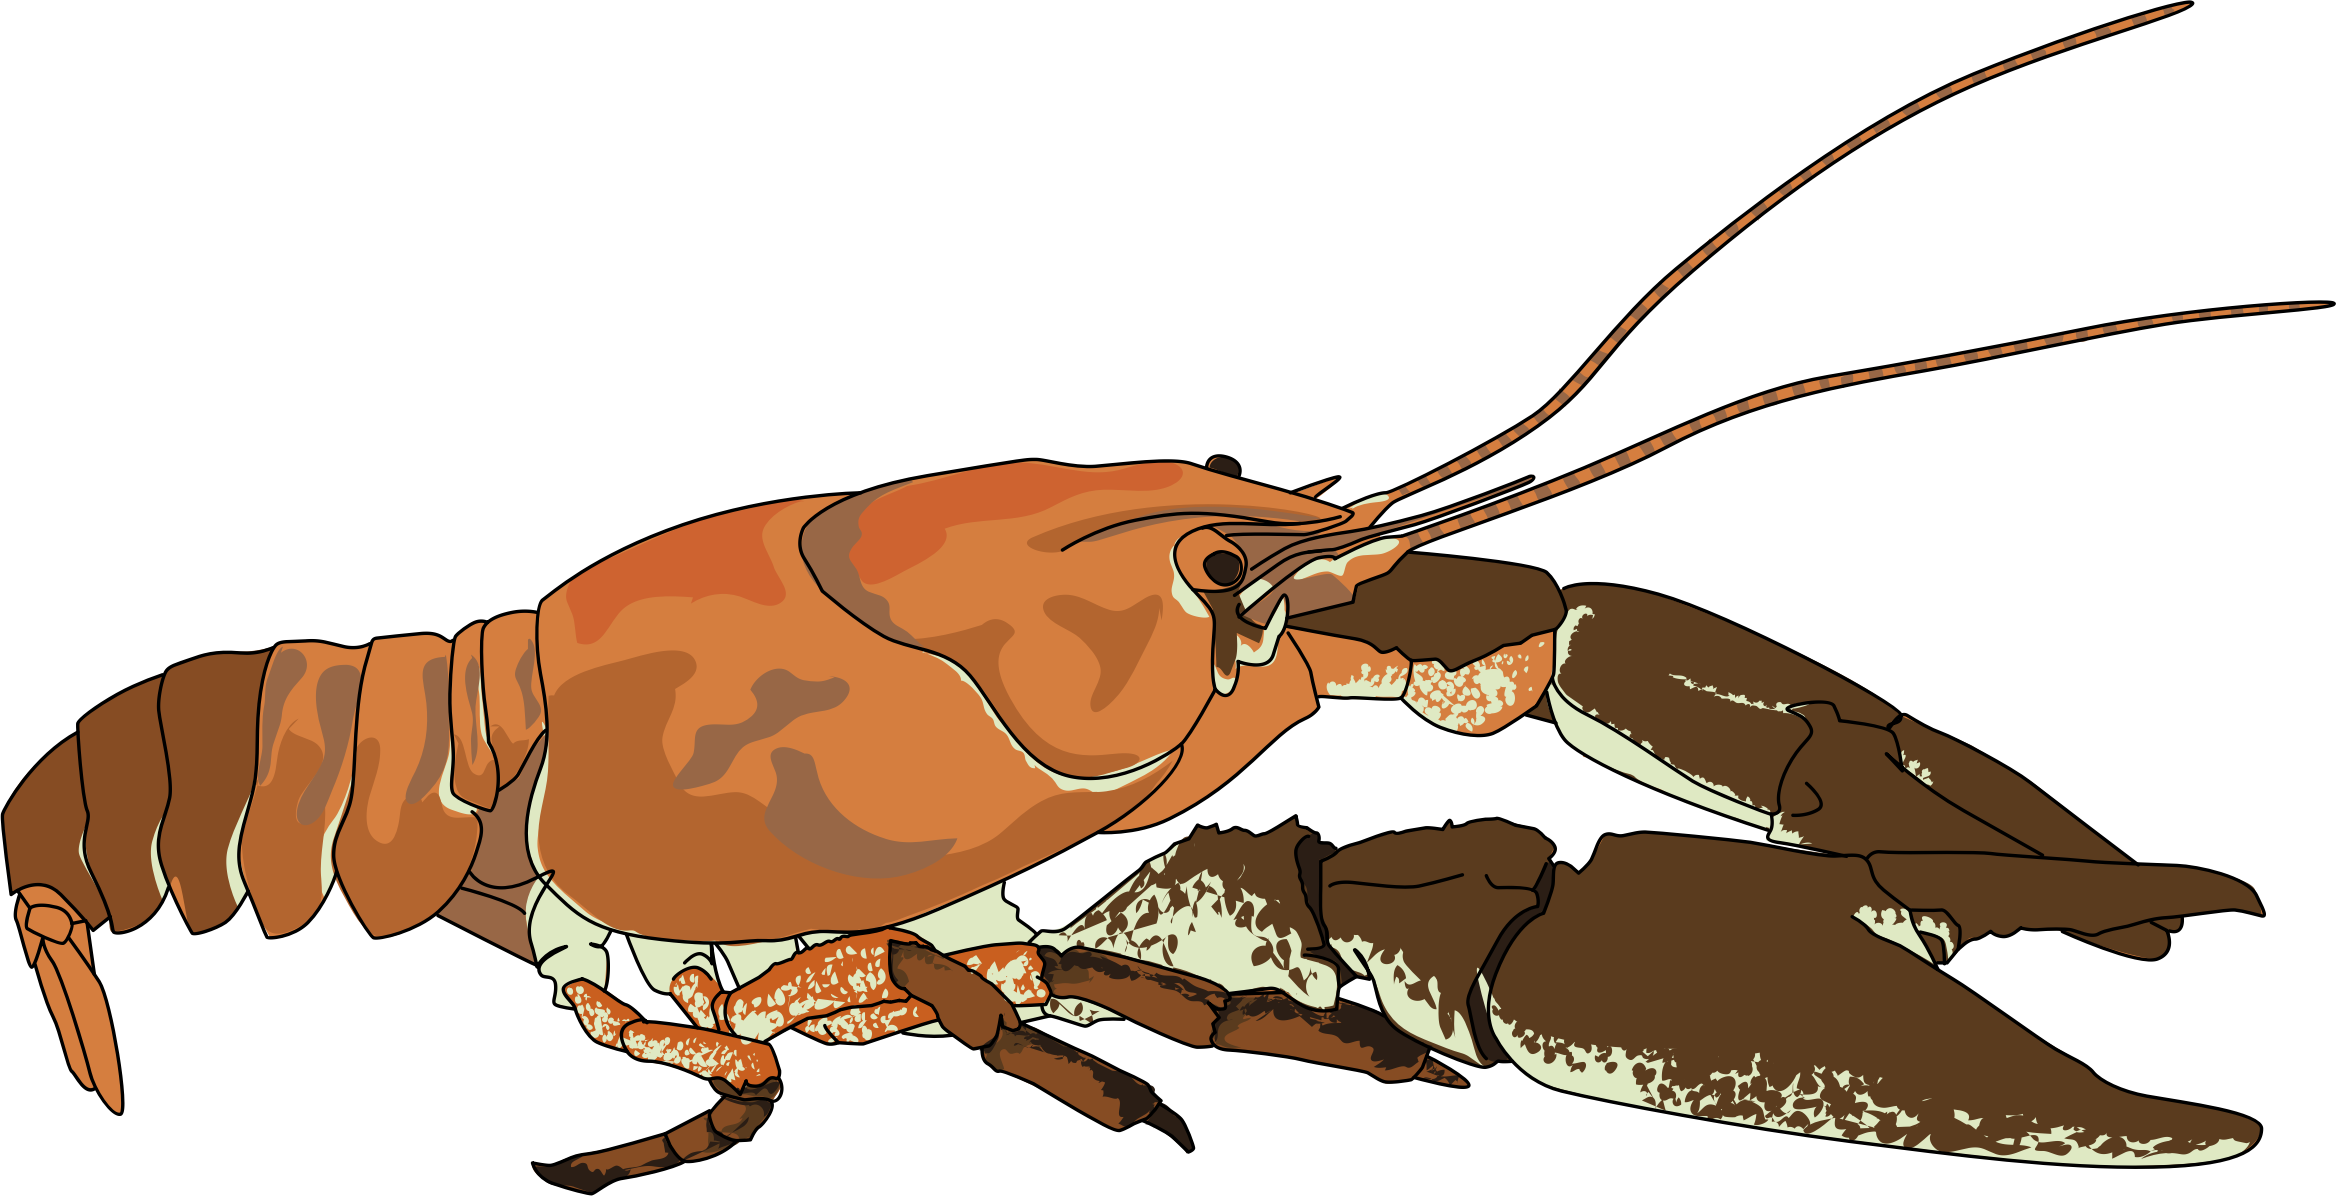 Omnivore fish clipart clipart royalty free library Off the Scale magazine - white-clawed crayfish and crayfish plague clipart royalty free library